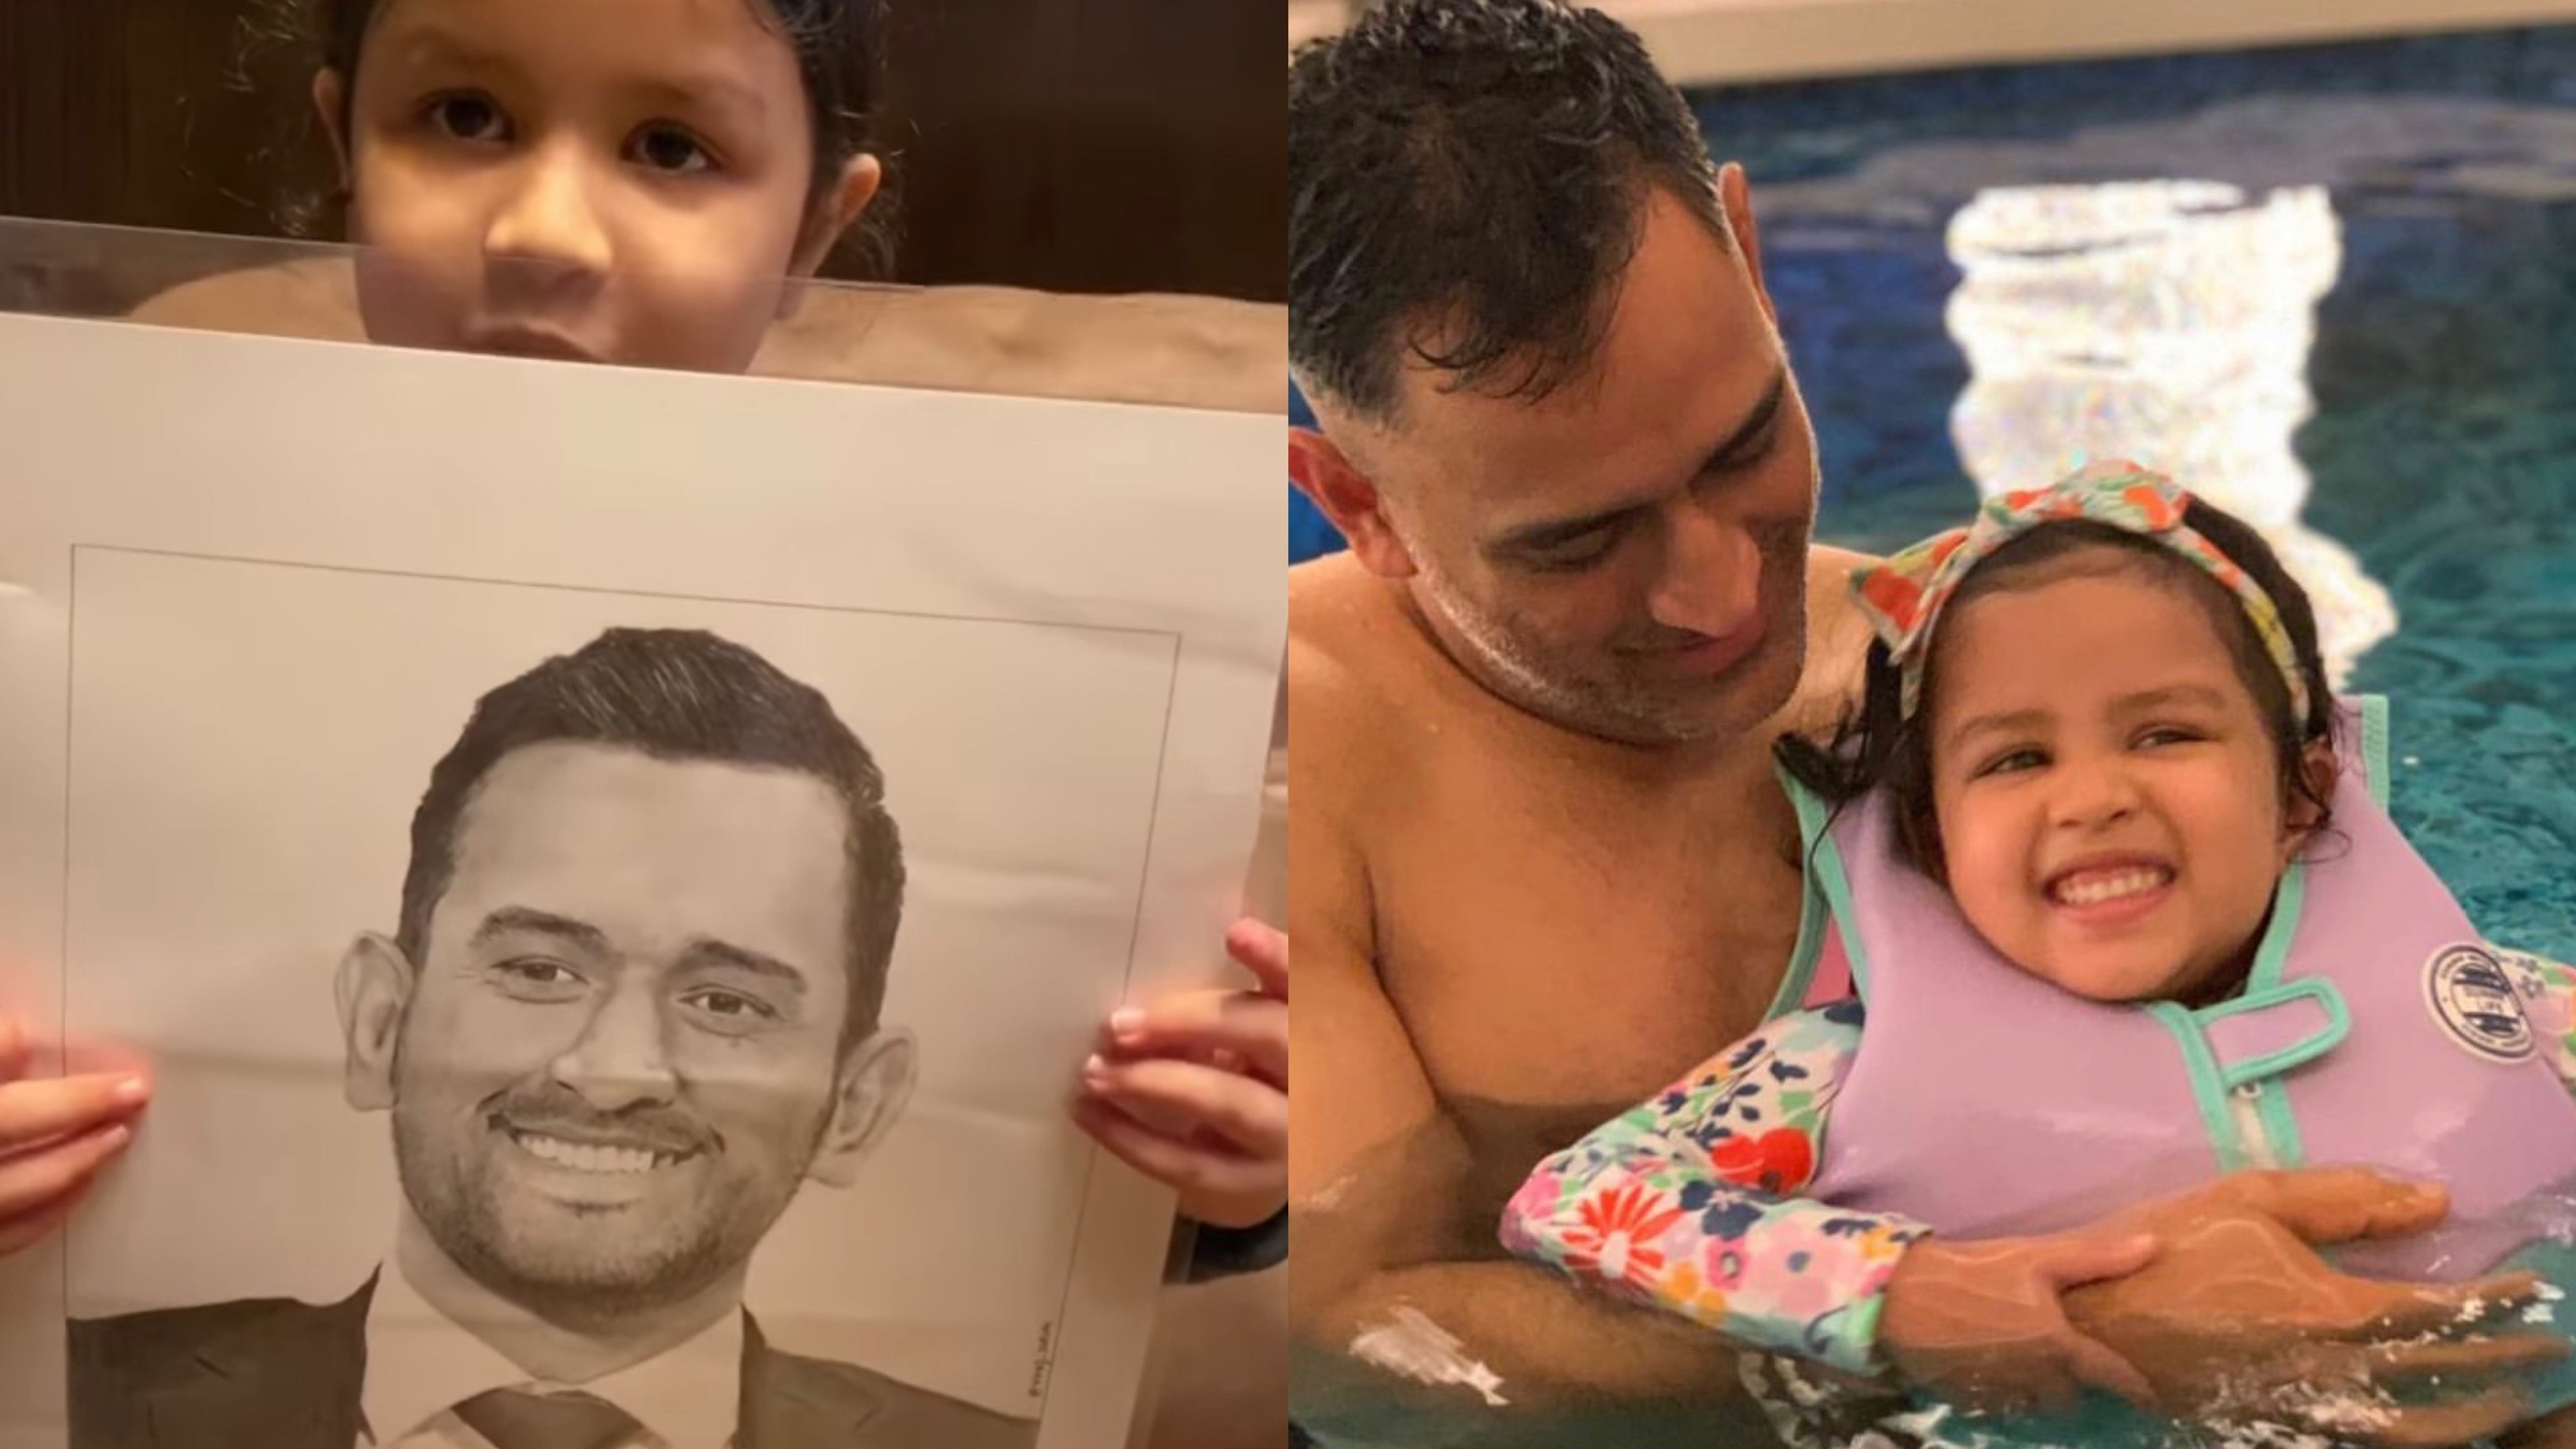 WATCH: 'Papa's biggest fan' says MS Dhoni's daughter Ziva